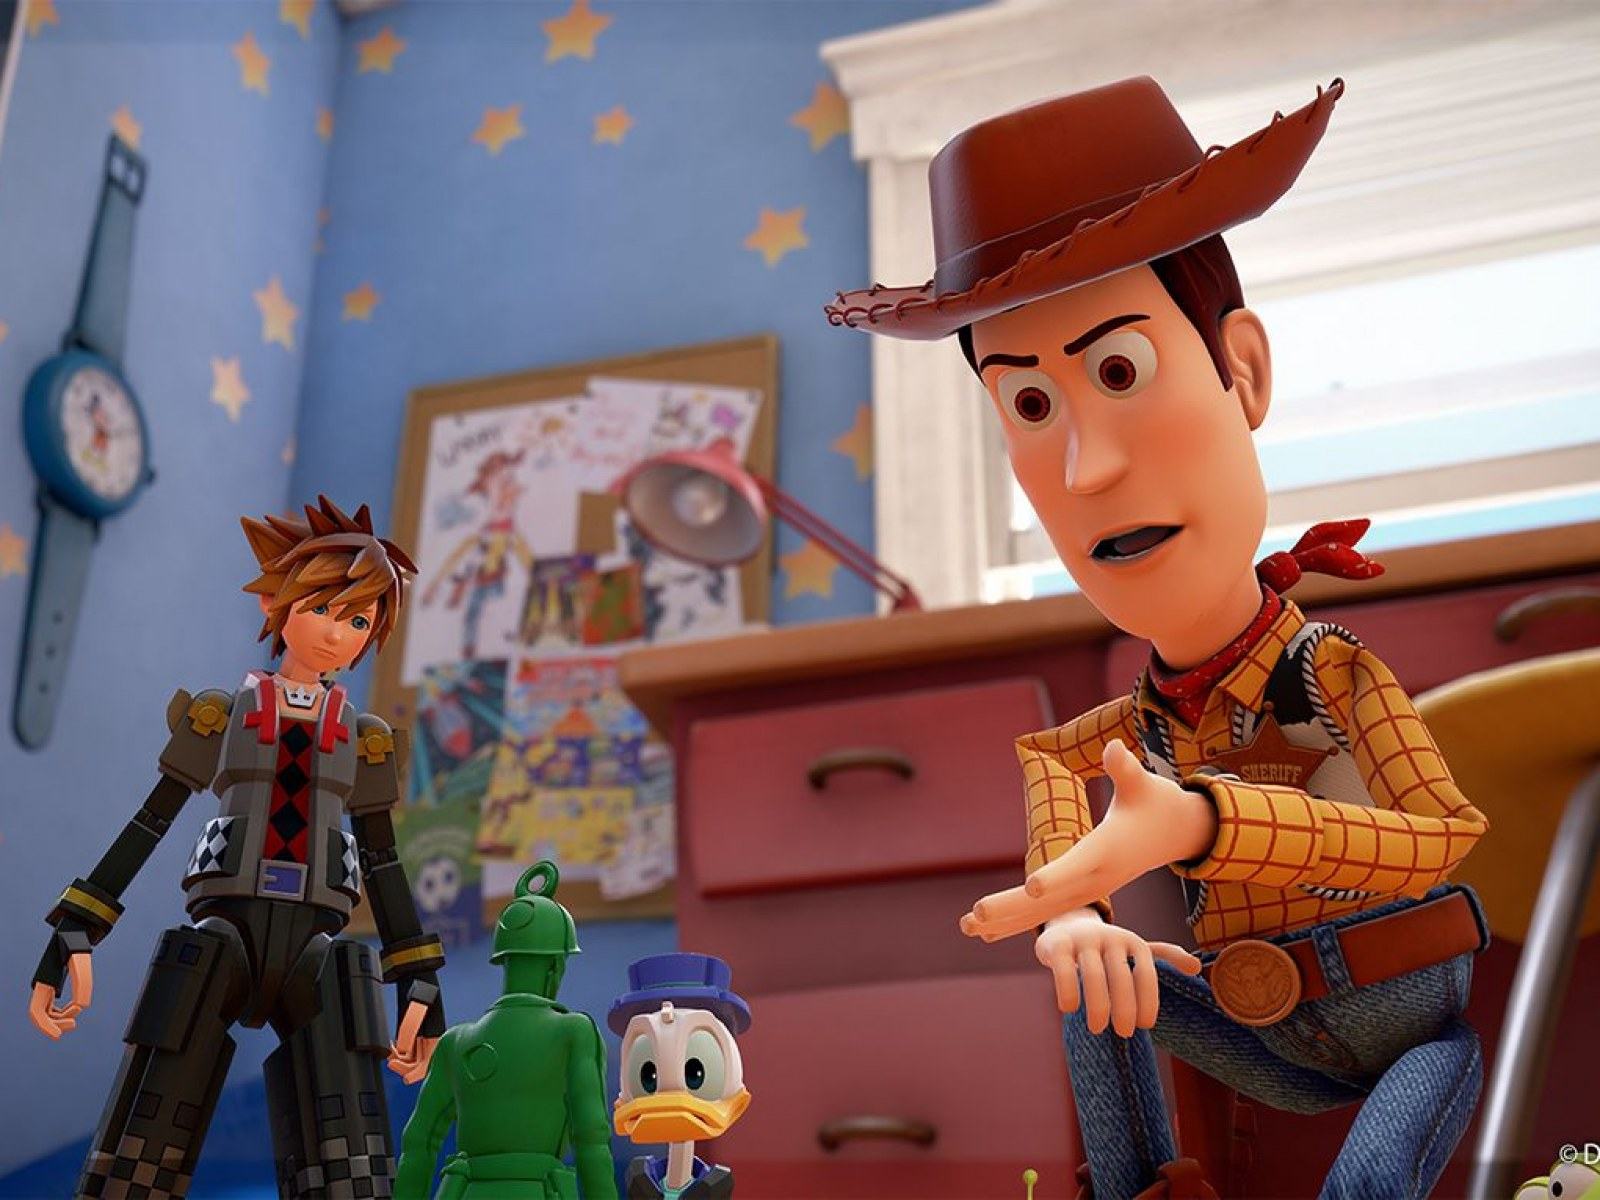 Kingdom Hearts 3 Director Refused To Make A Game Without Toy